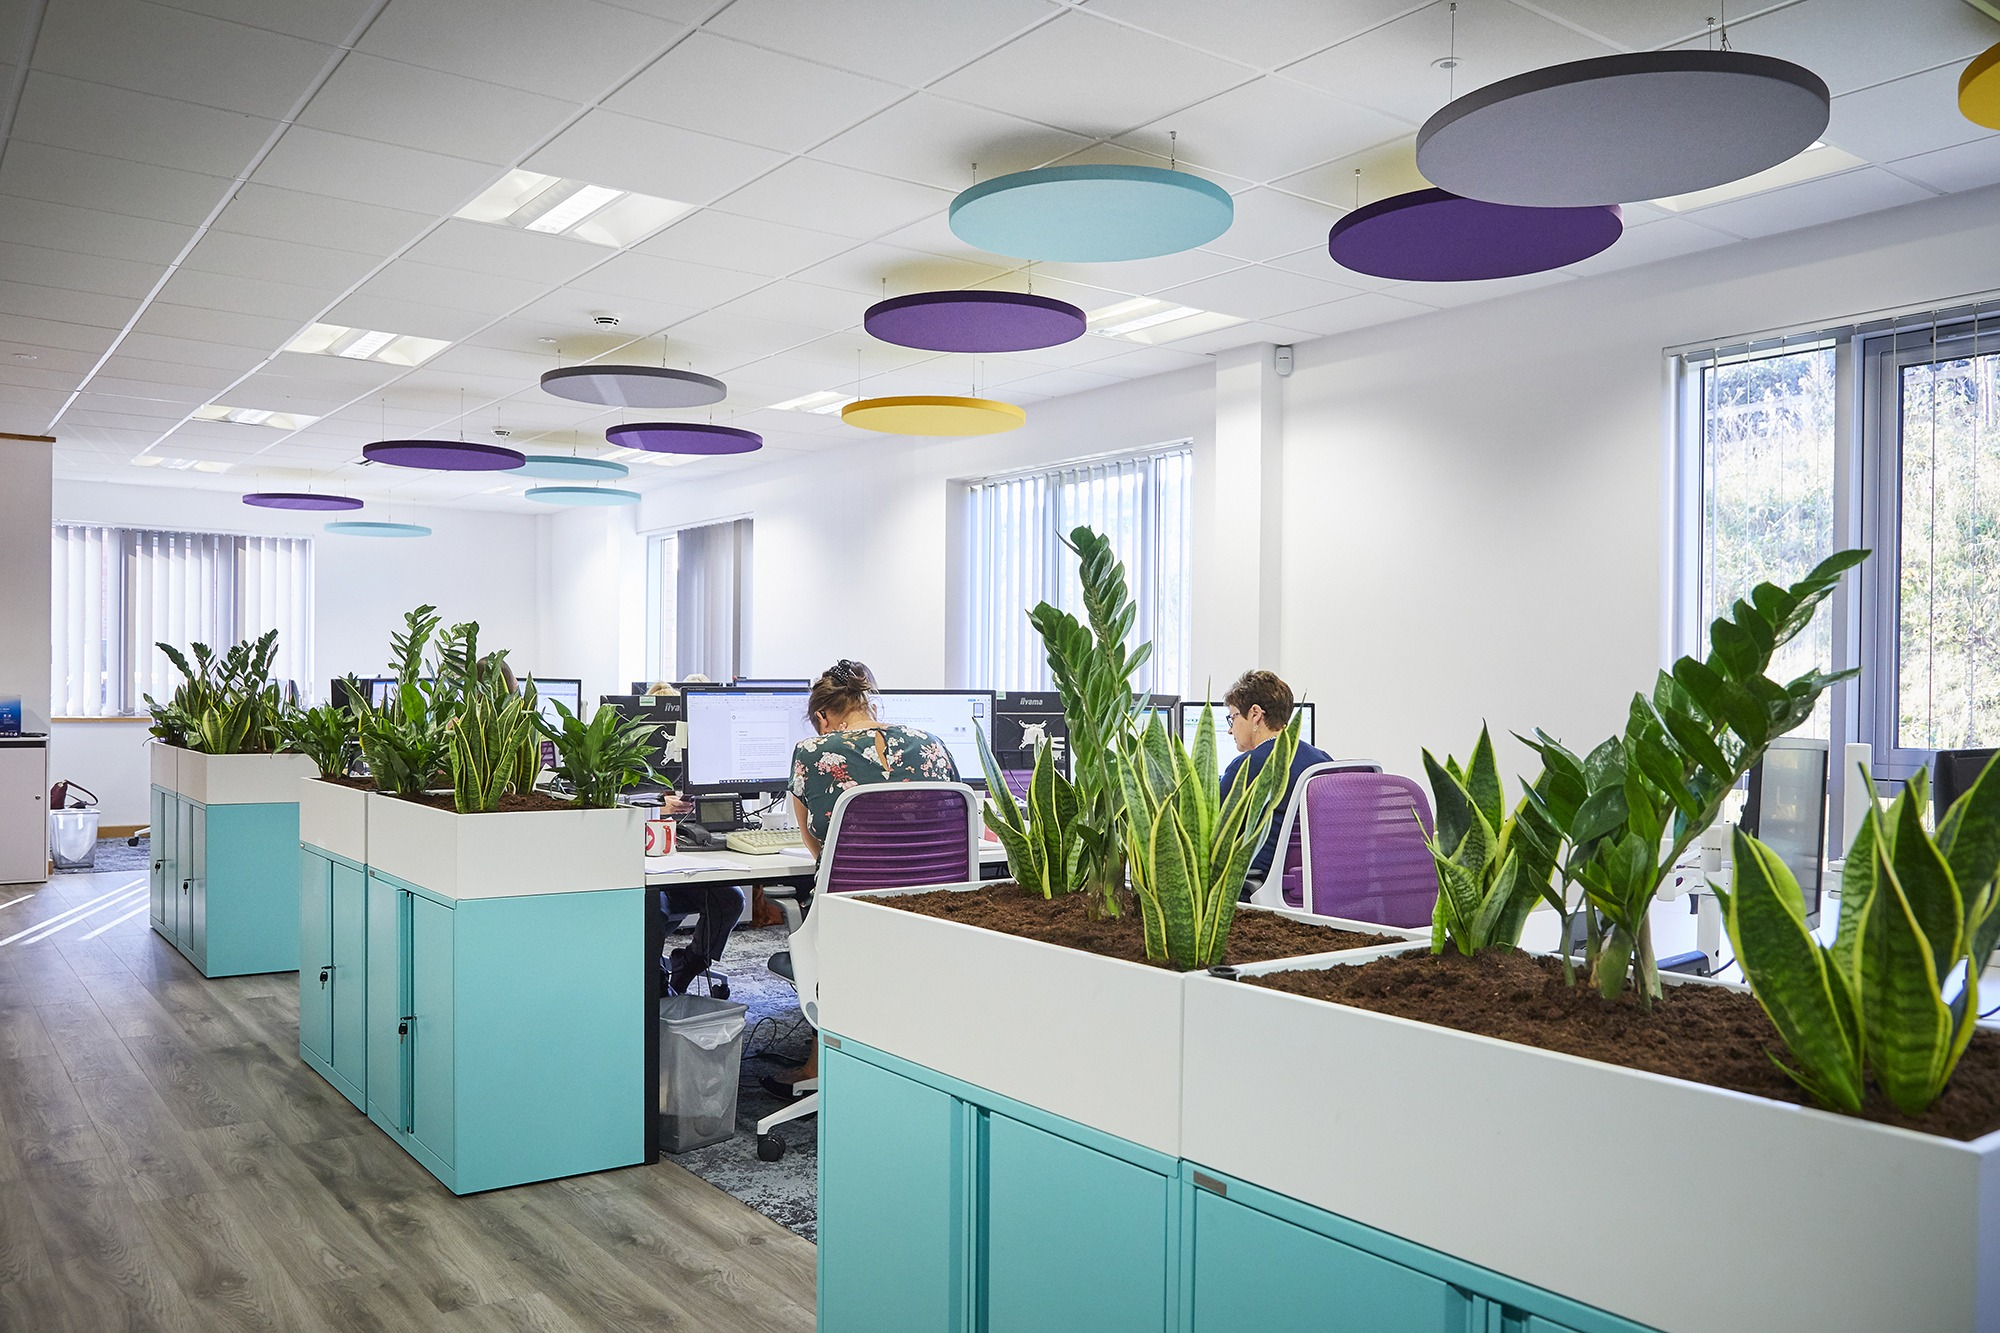 Commercial office design at Finch Consulting, featuring biophilic furniture